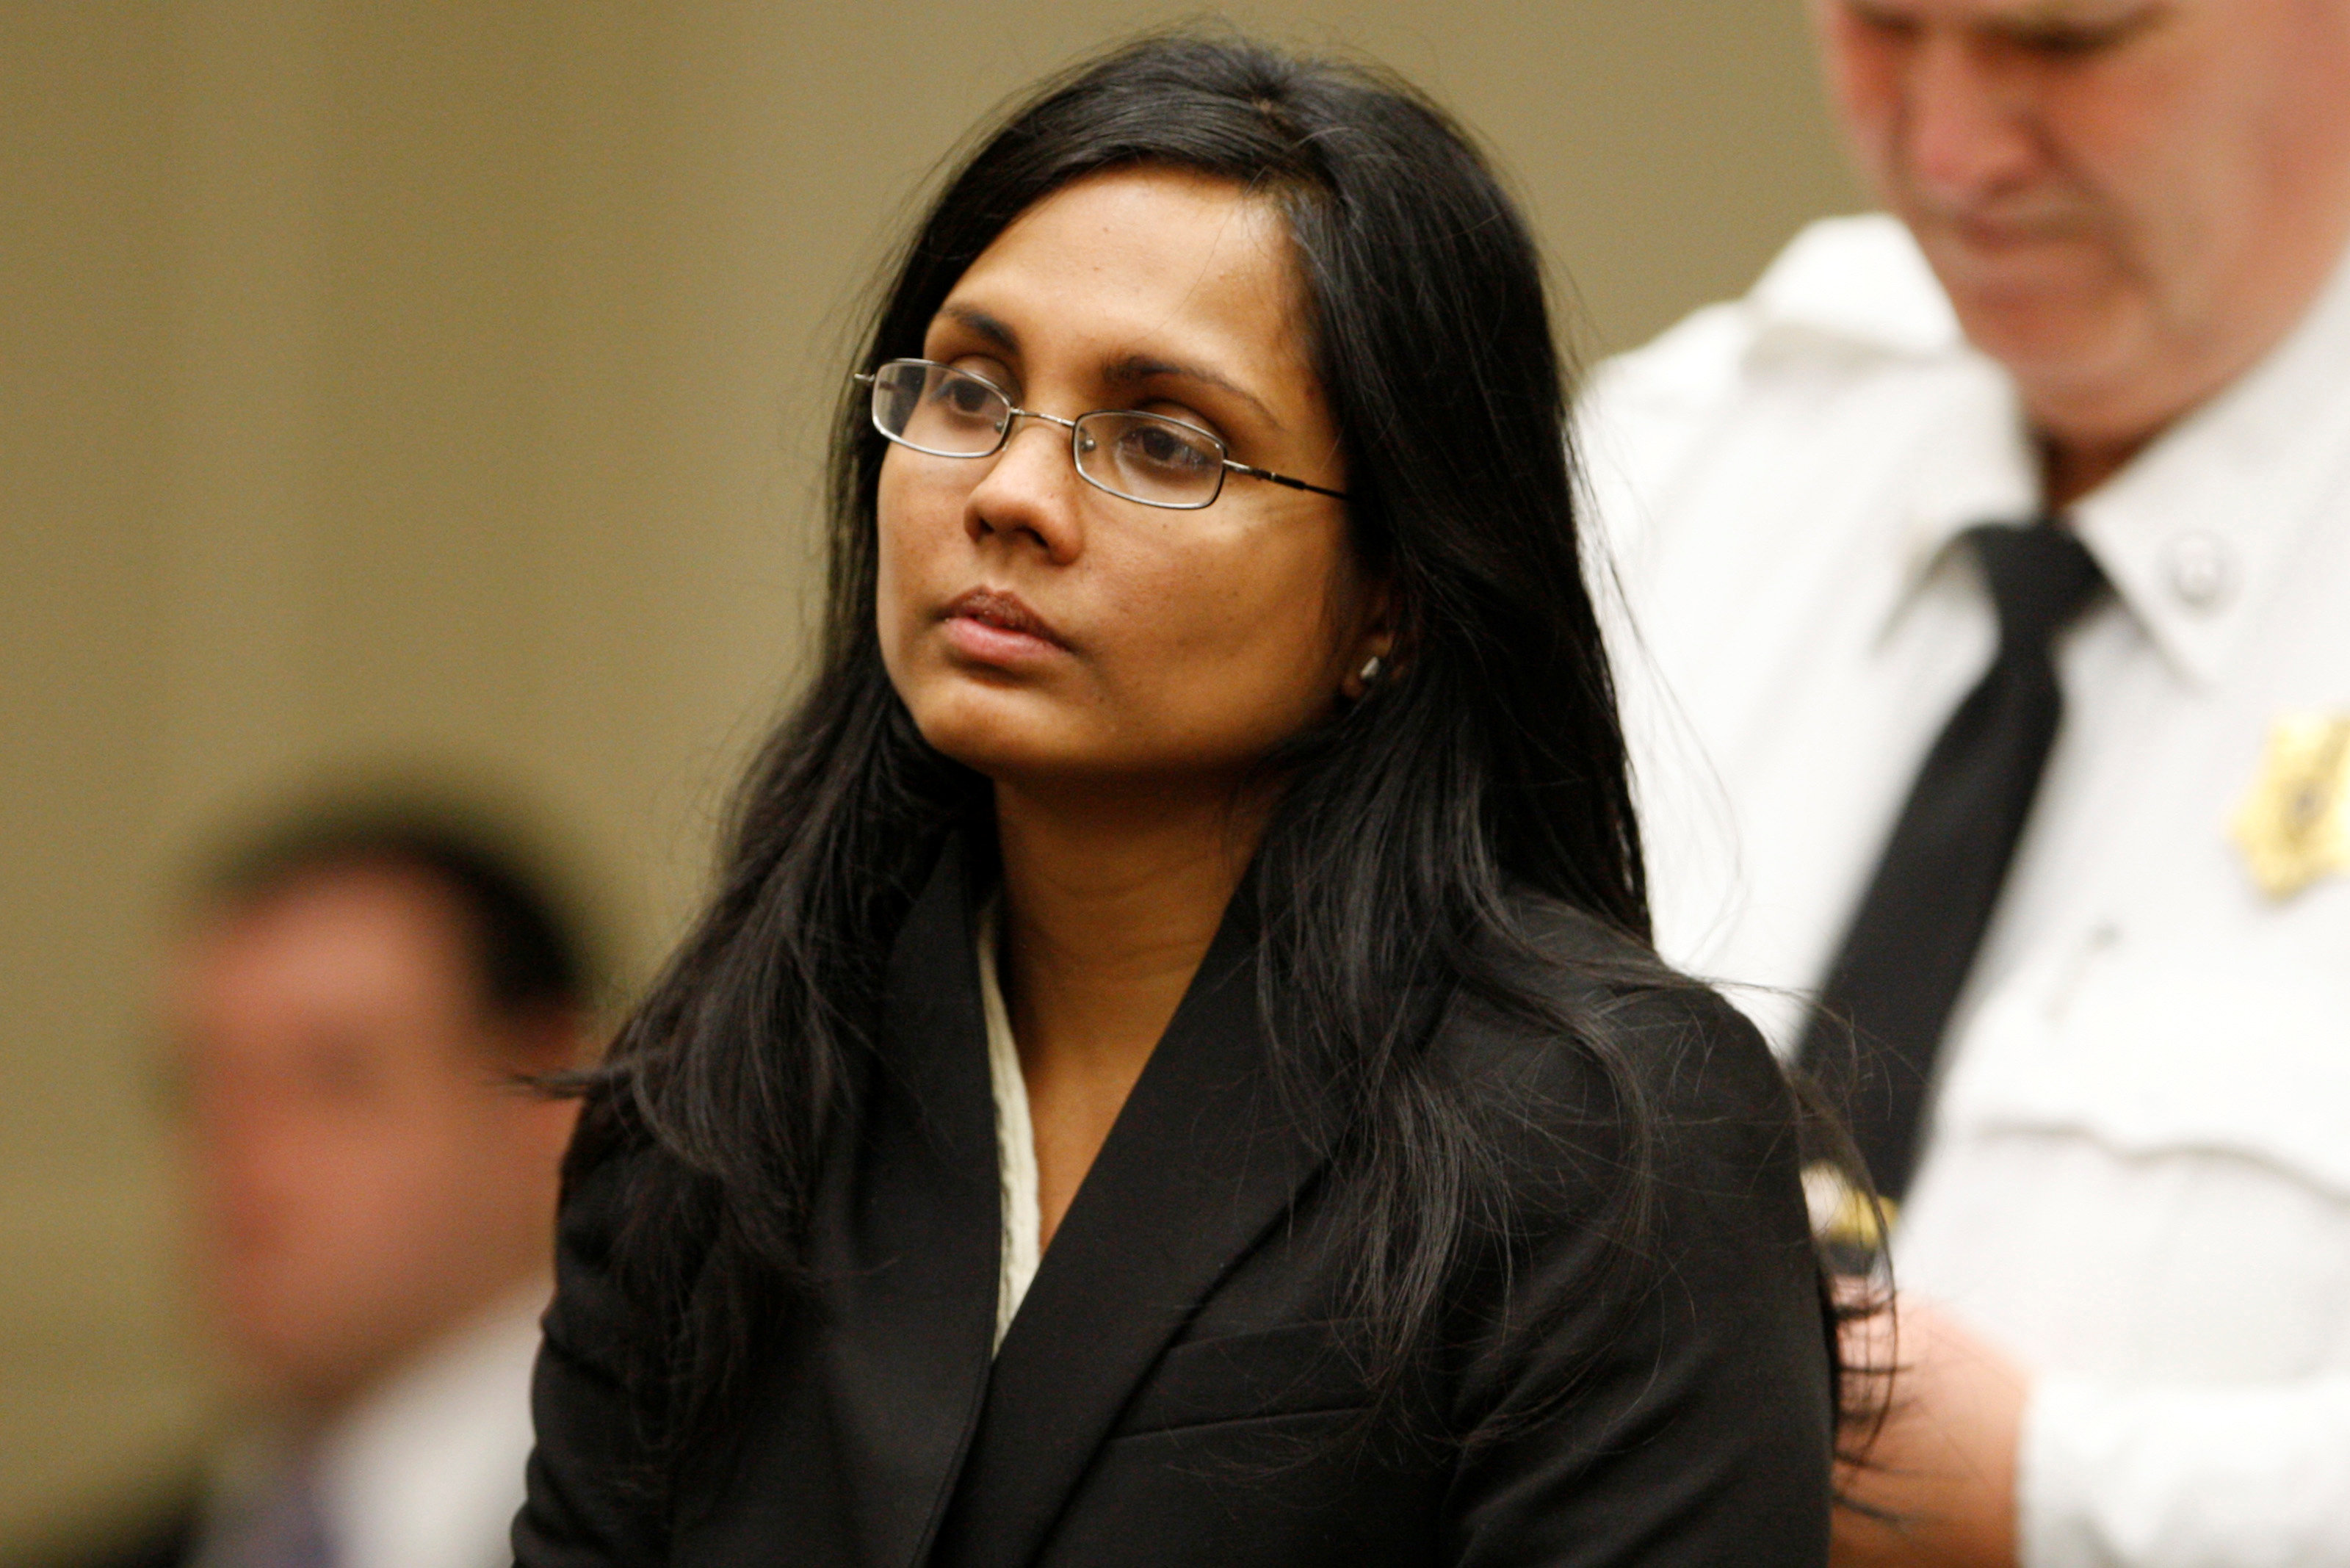 FILE PHOTO: Annie Dookhan, a former chemist at the Hinton State Laboratory Institute, listens to the judge during her arraignment at Brockton Superior Court in Brockton, Massachusetts on Jan. 30, 2013. (REUTERS/Jessica Rinaldi)